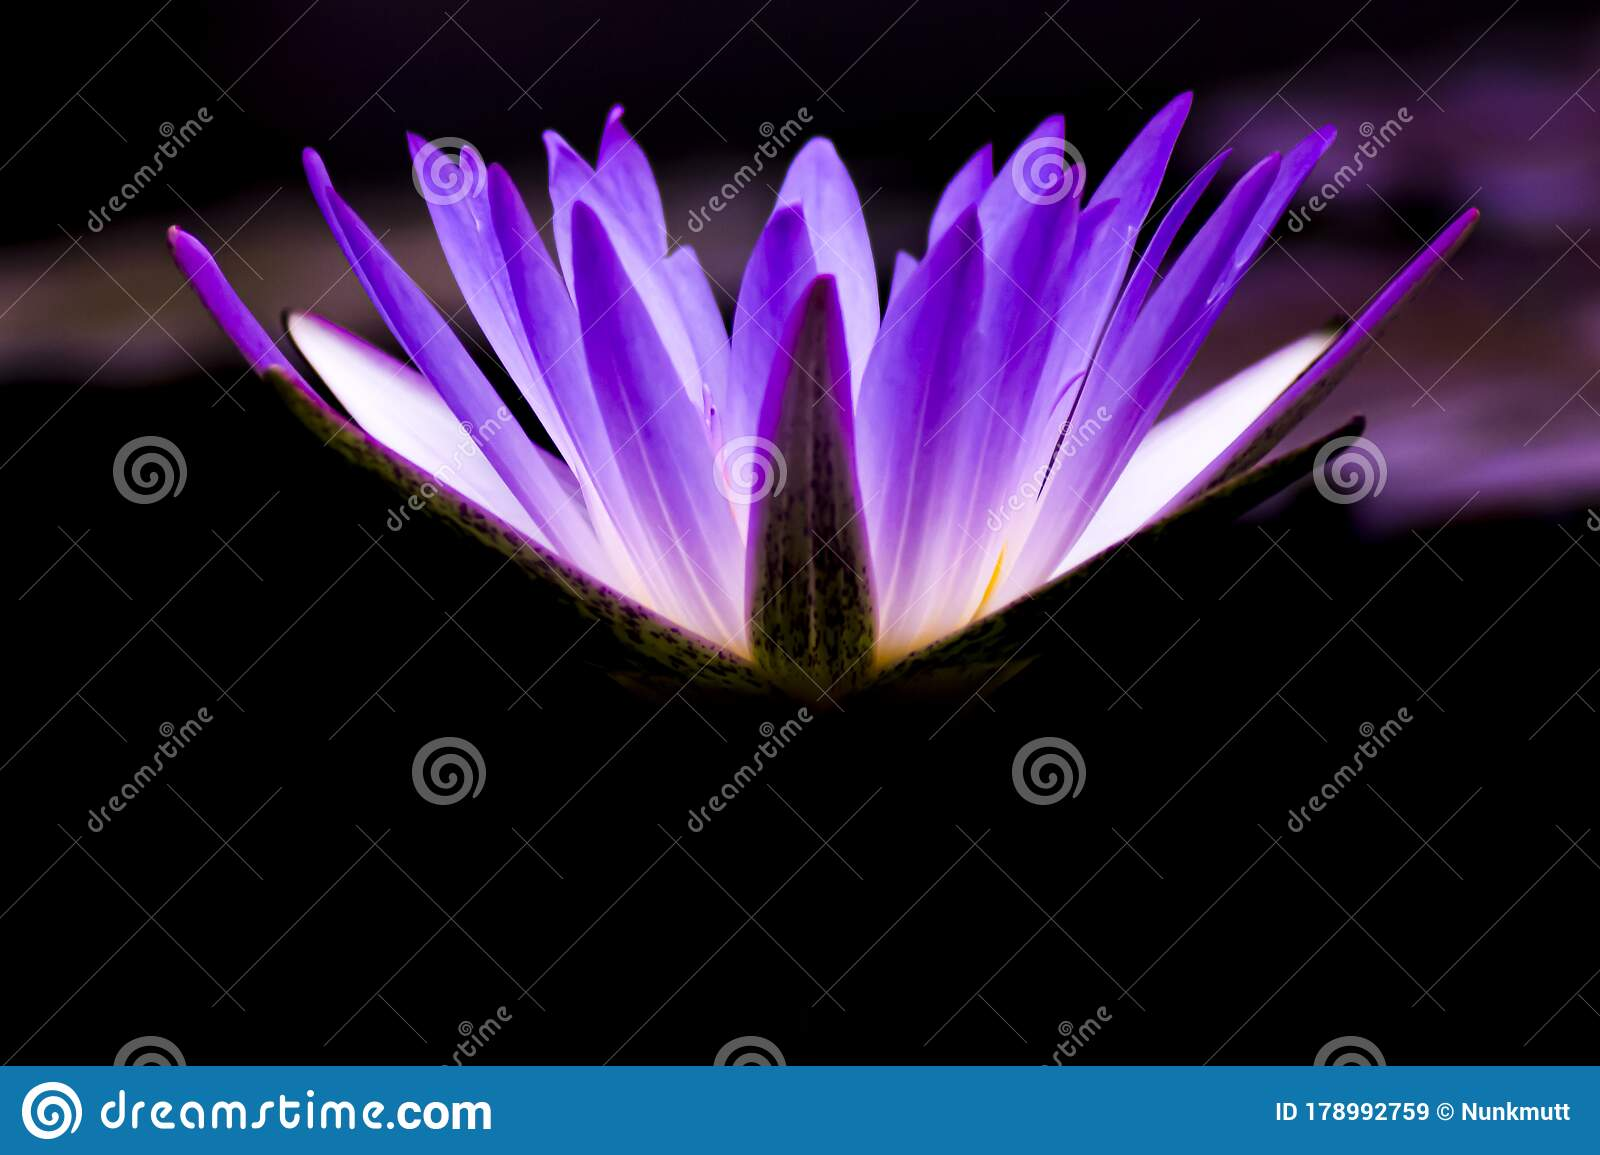 175 Flower Meanings Photos Free Royalty Free Stock Photos From Dreamstime